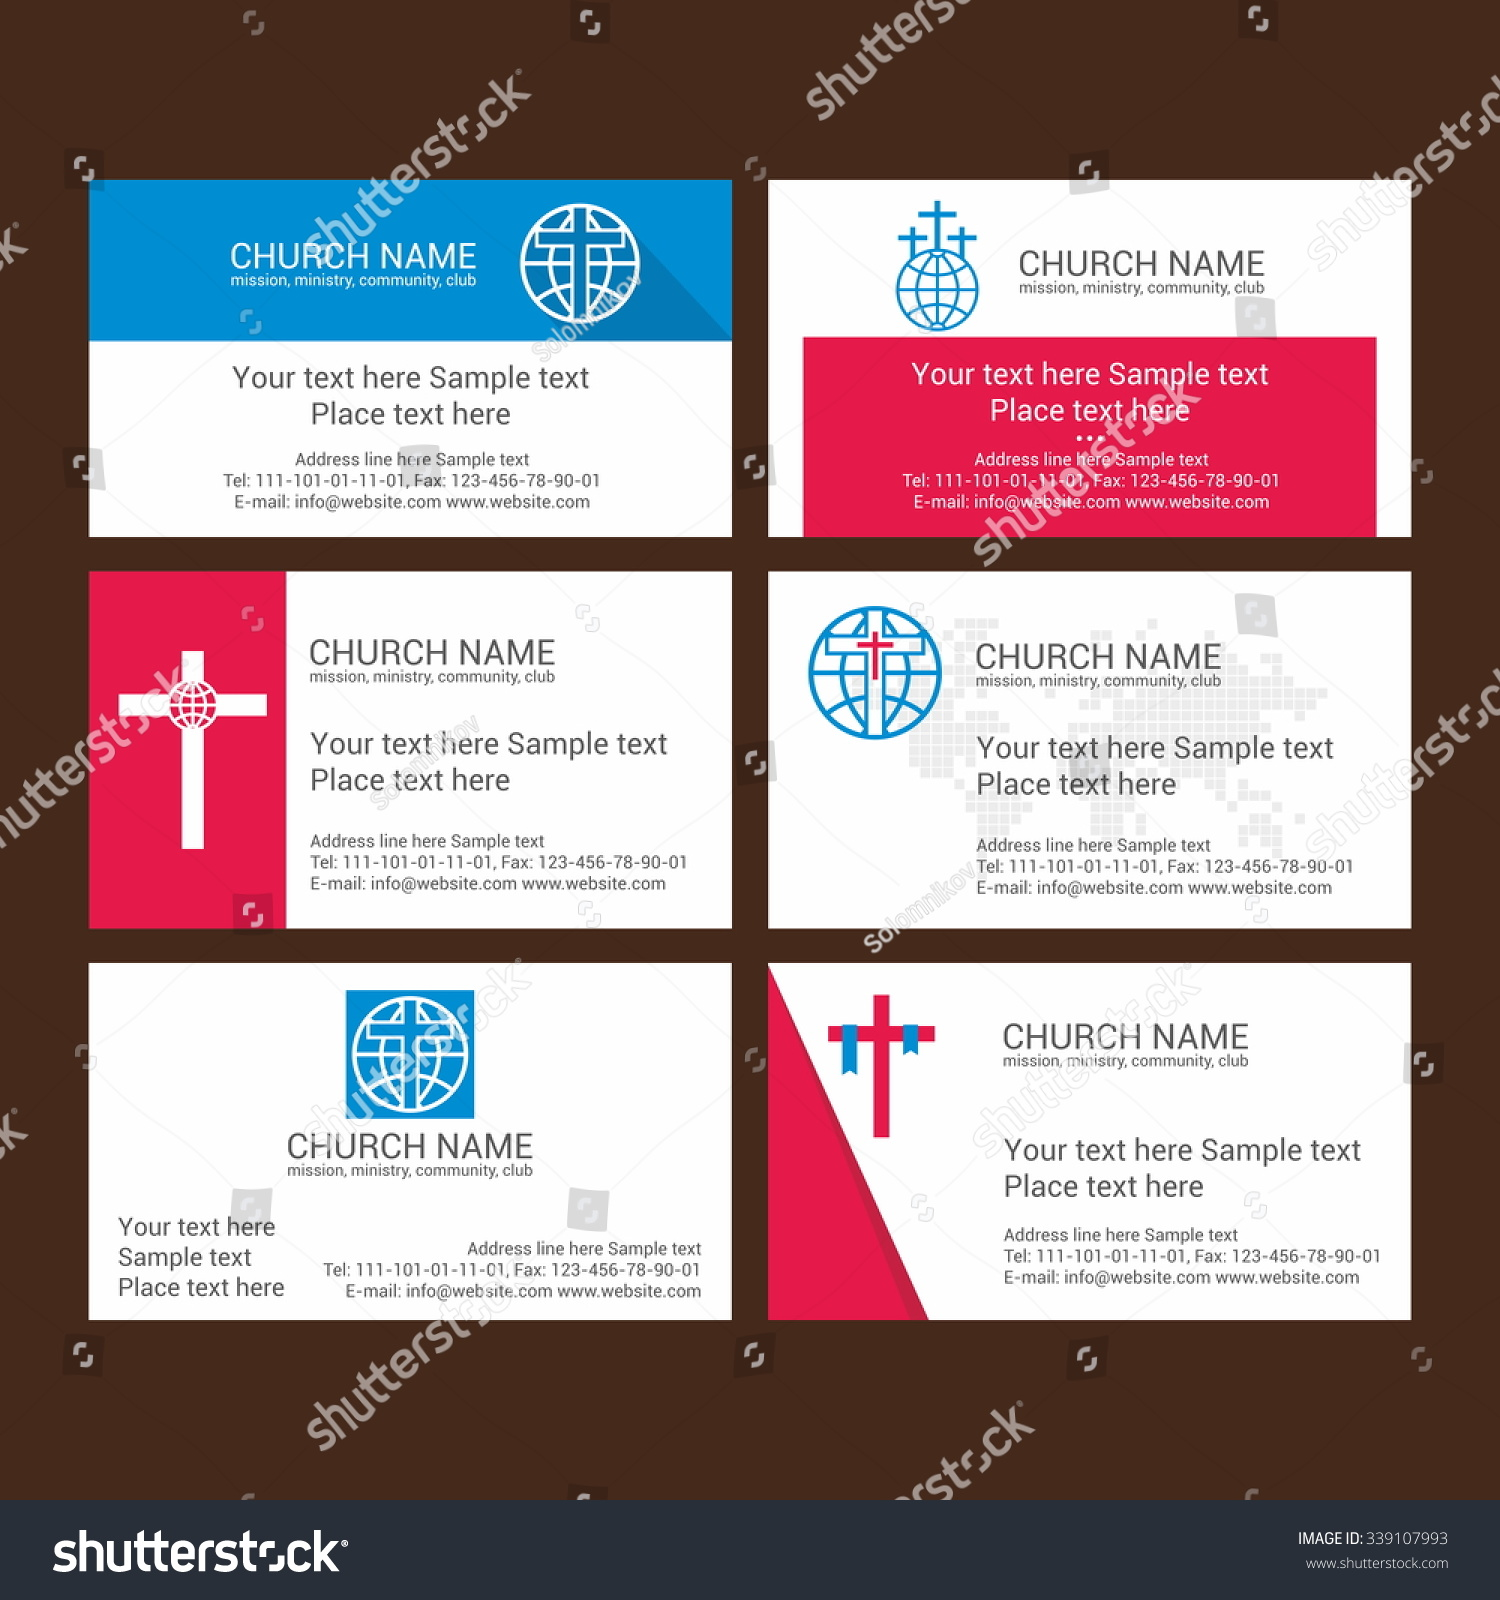 Elegant Pics Of Business Cards for Ministers – Business Cards and Resume